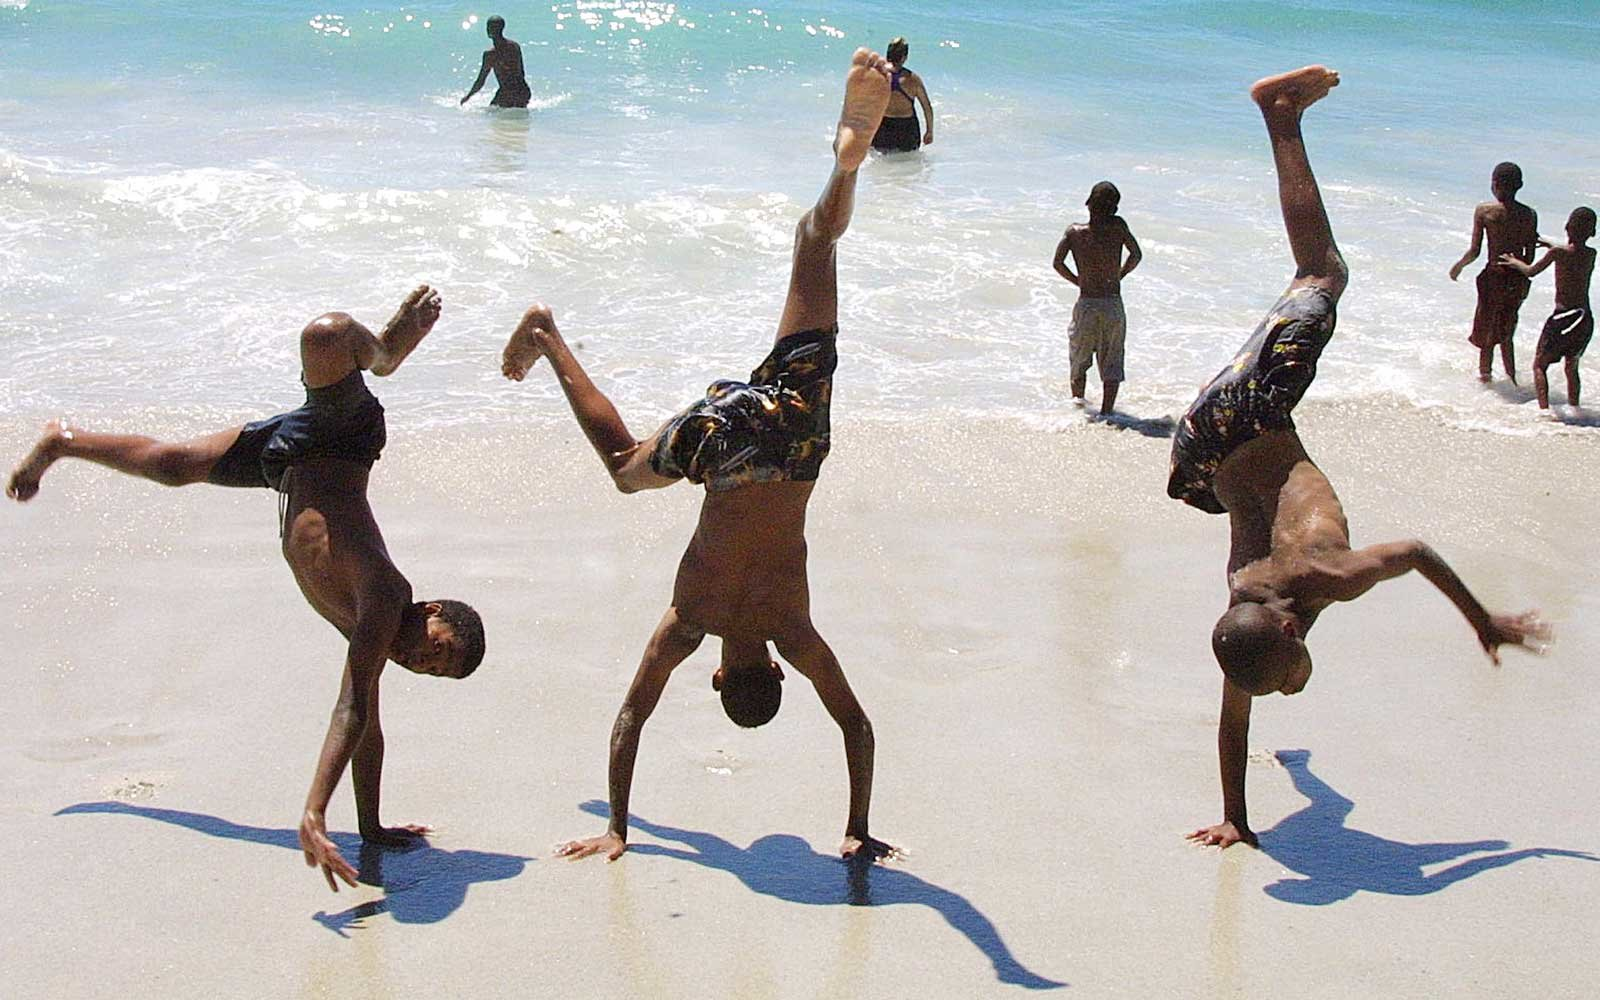 Holiday-makers frolic at the water's edge on Camp's Town Beach, South Africa